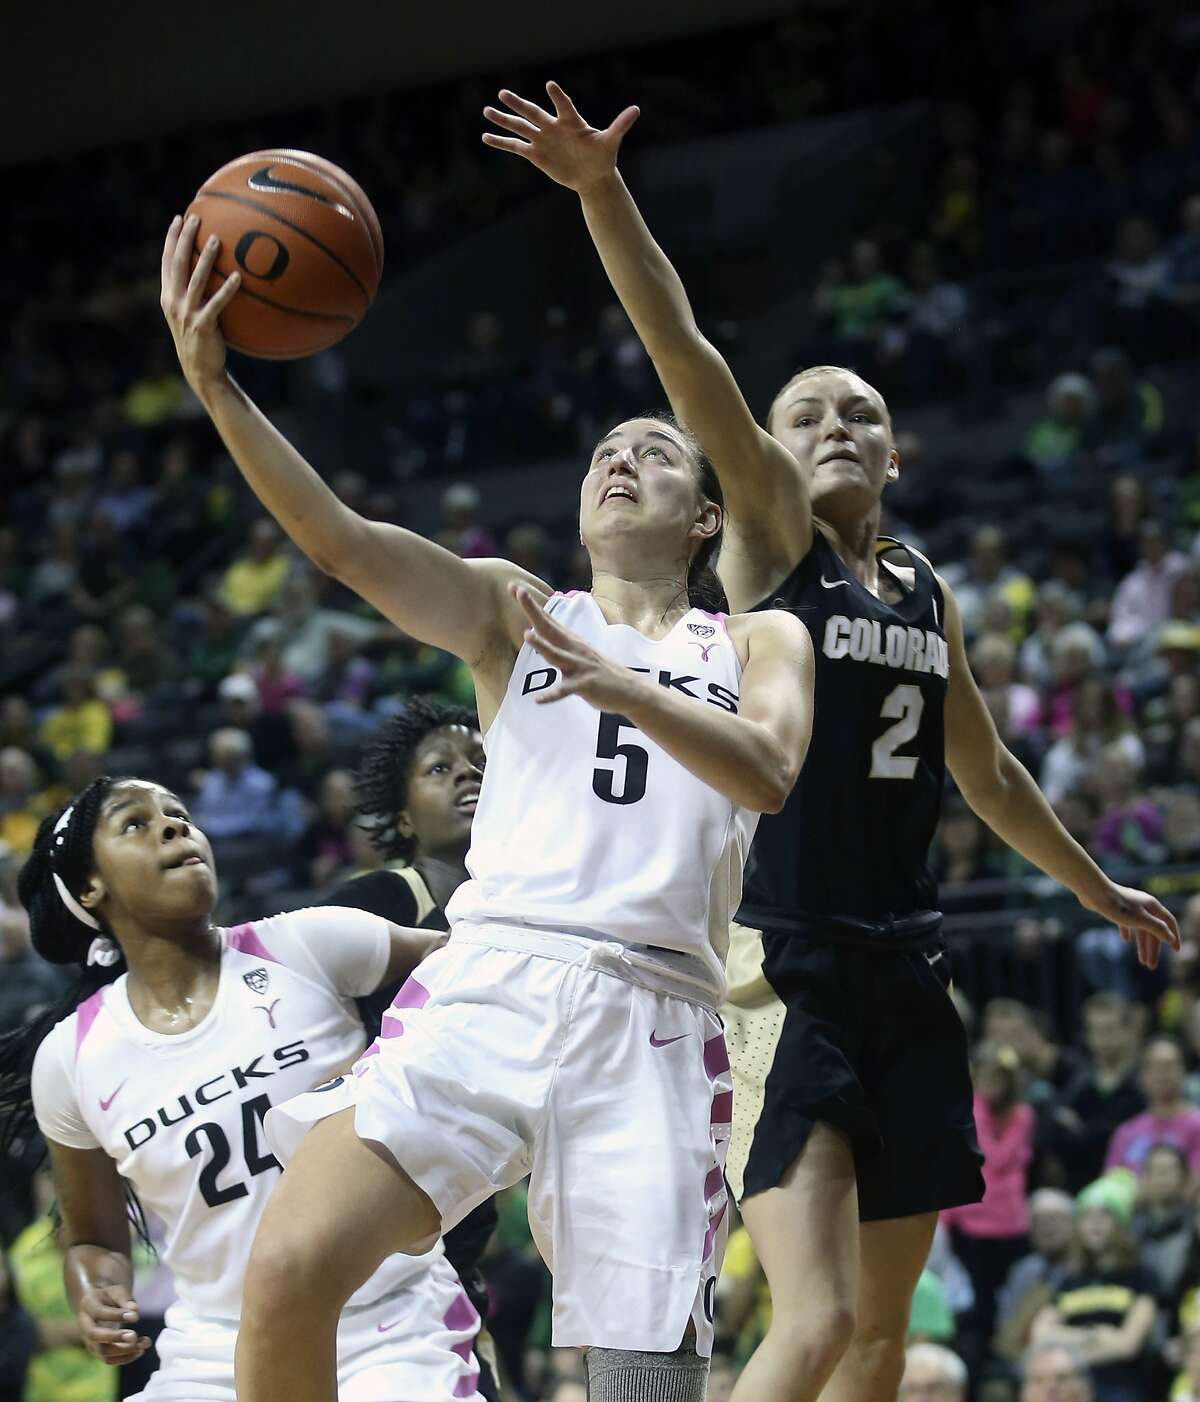 Oregon's Ruthy Hebard, left, sets a screen on Colorado's Mya Hollingshed, second from left, as Oregon's Maite Cazorla (5) goes up to shoot ahead of Colorado's Alexis Robinson (2) during the second quarter of an NCAA college basketball game Sunday, Feb. 3, 2019, in Eugene, Ore. (AP Photo/Chris Pietsch)